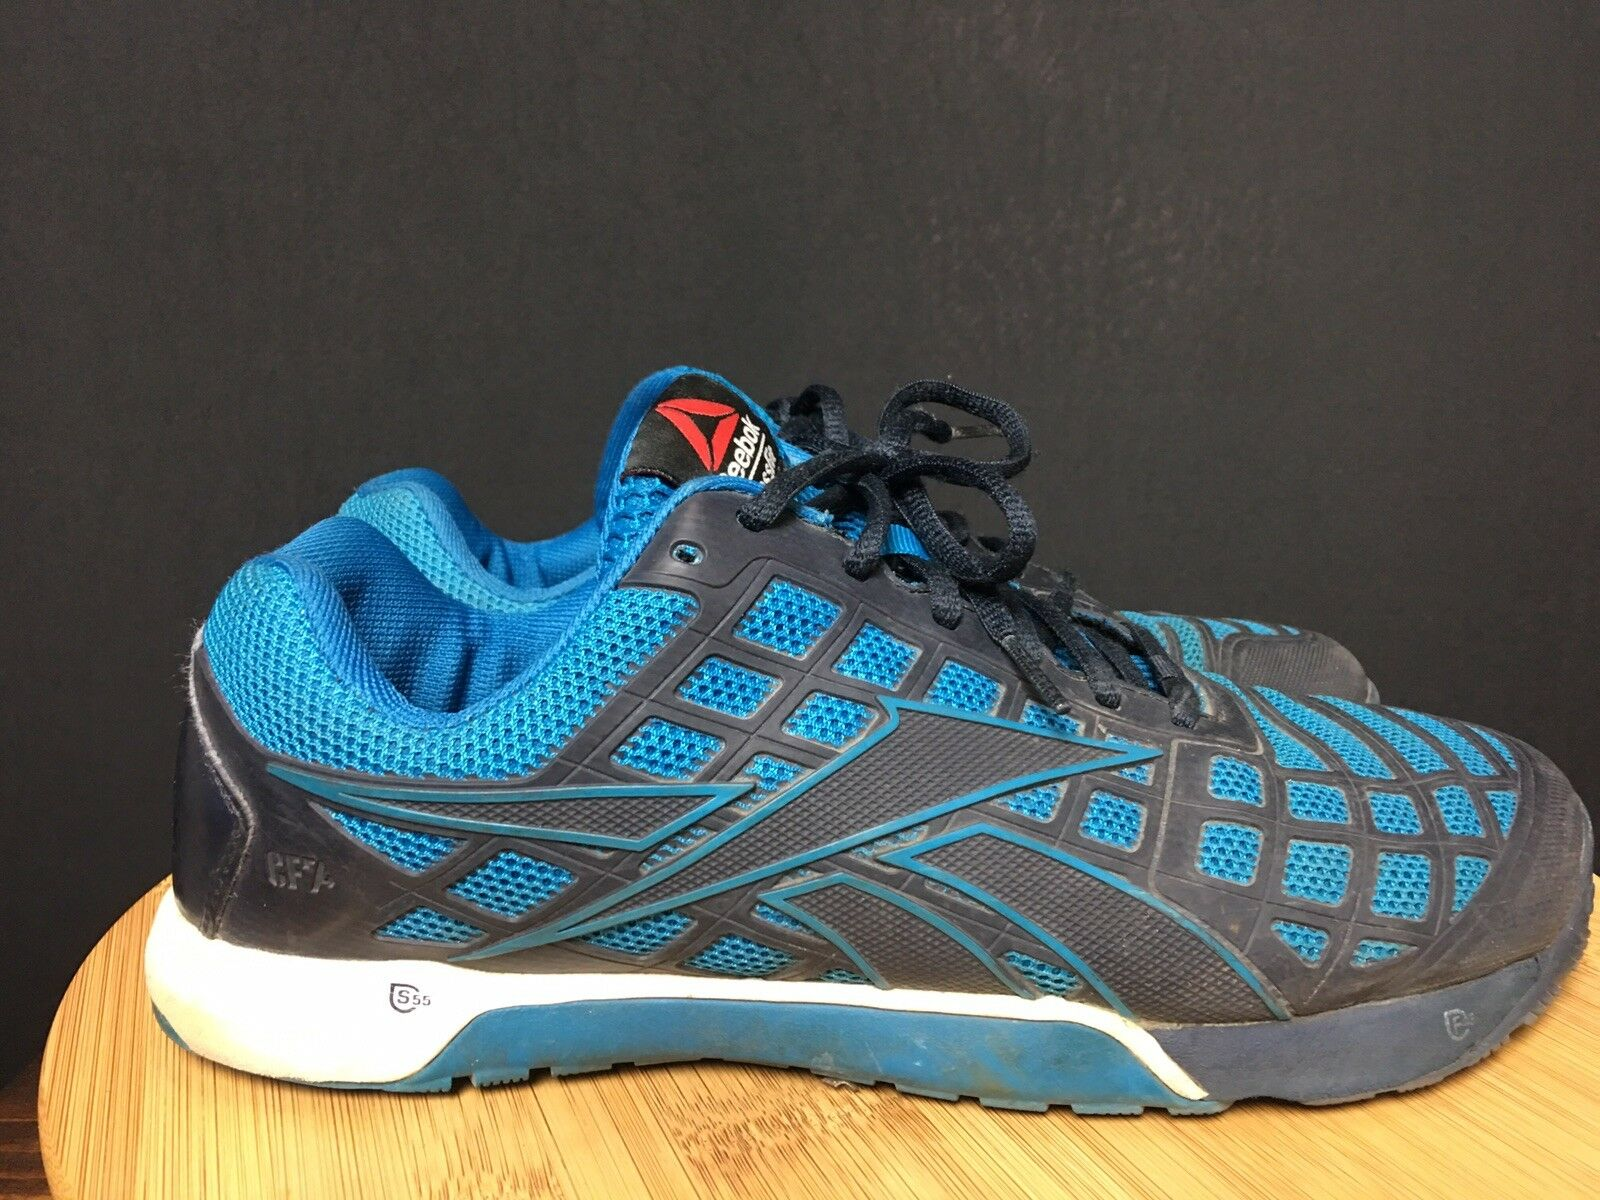 Reebok Crossfit CF74 Navy bluee and Teal Nano  Men's  shoes Size 9.5